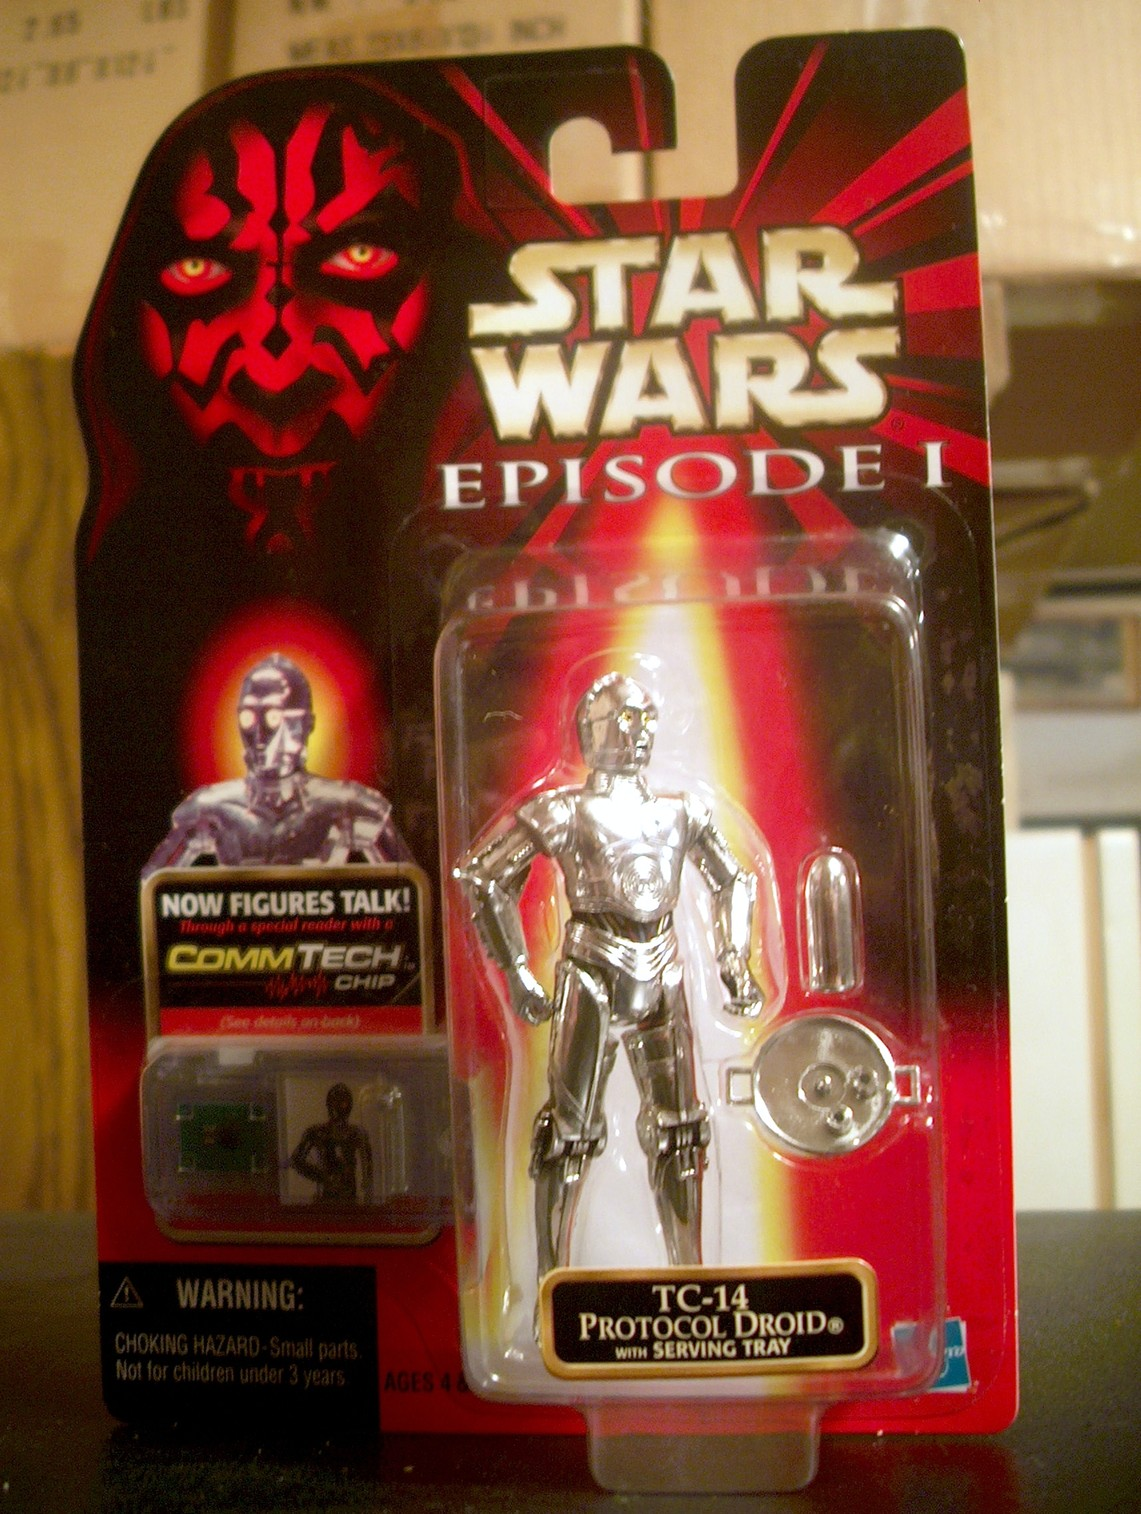 TC-14 Protocol Droid with Serving Tray